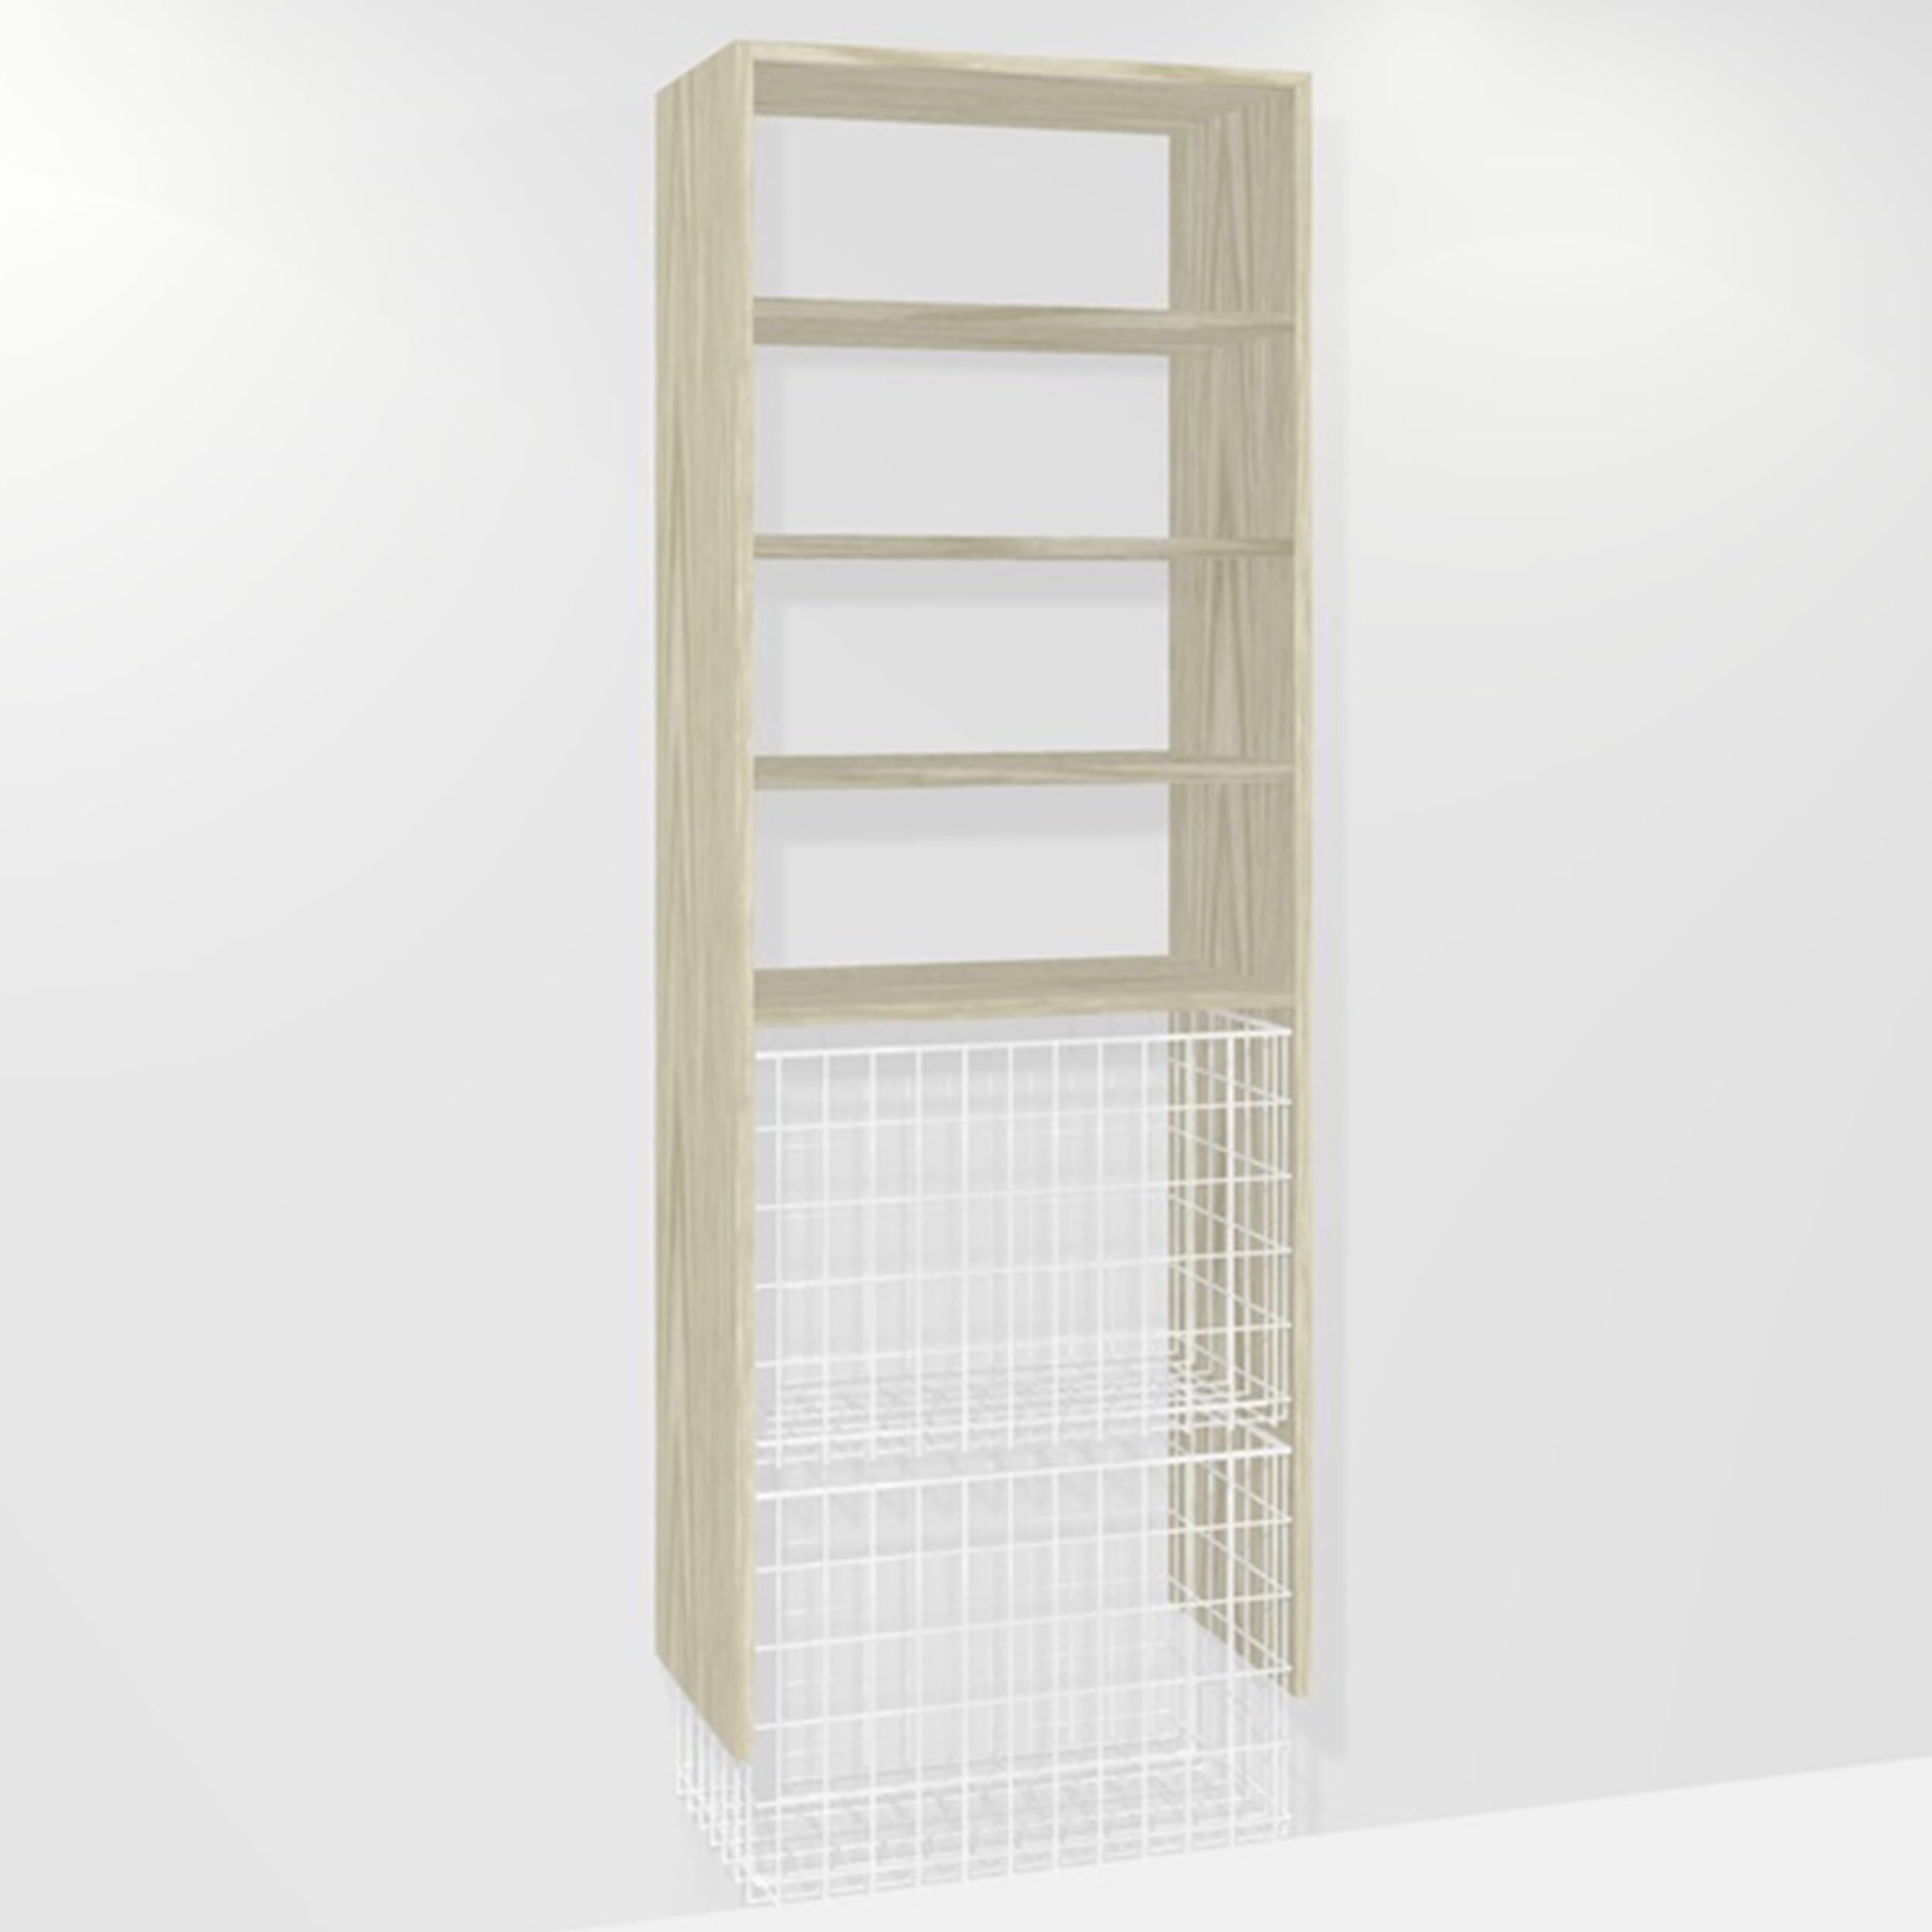 B002 (2-large basket 3-shelf)